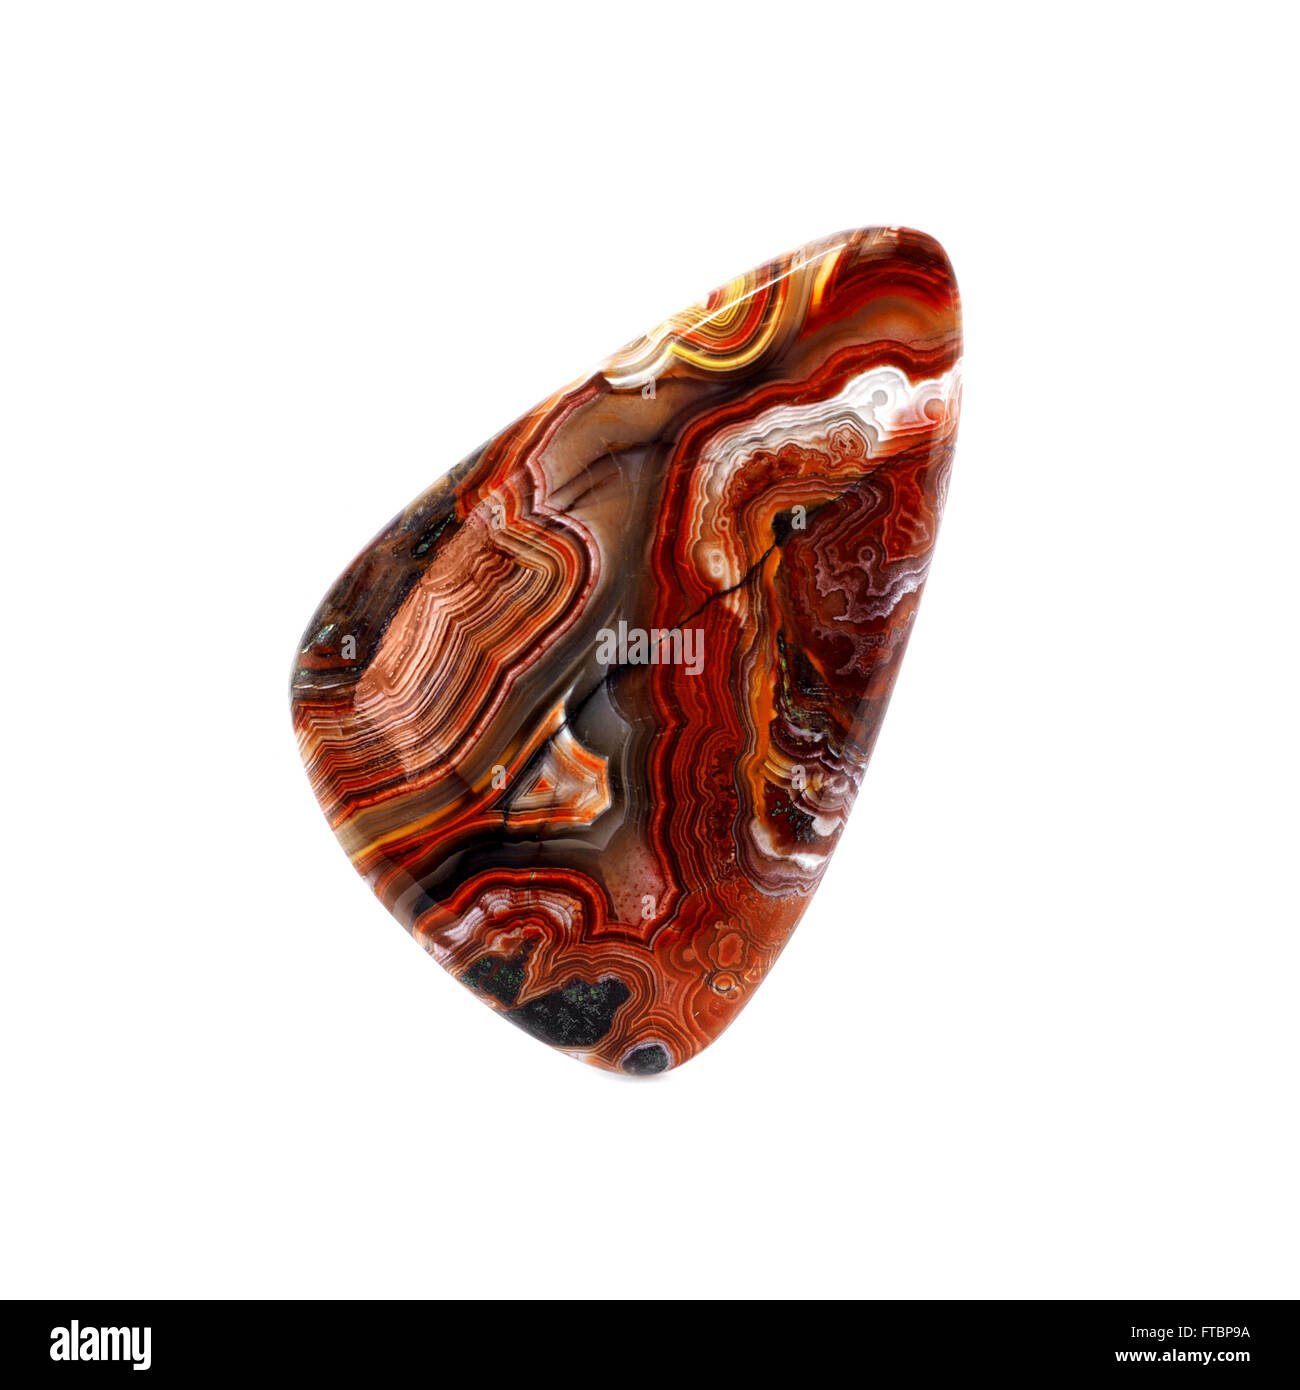 Natural Gemstone - Crazy Lace Agate from Africa - Stock Image